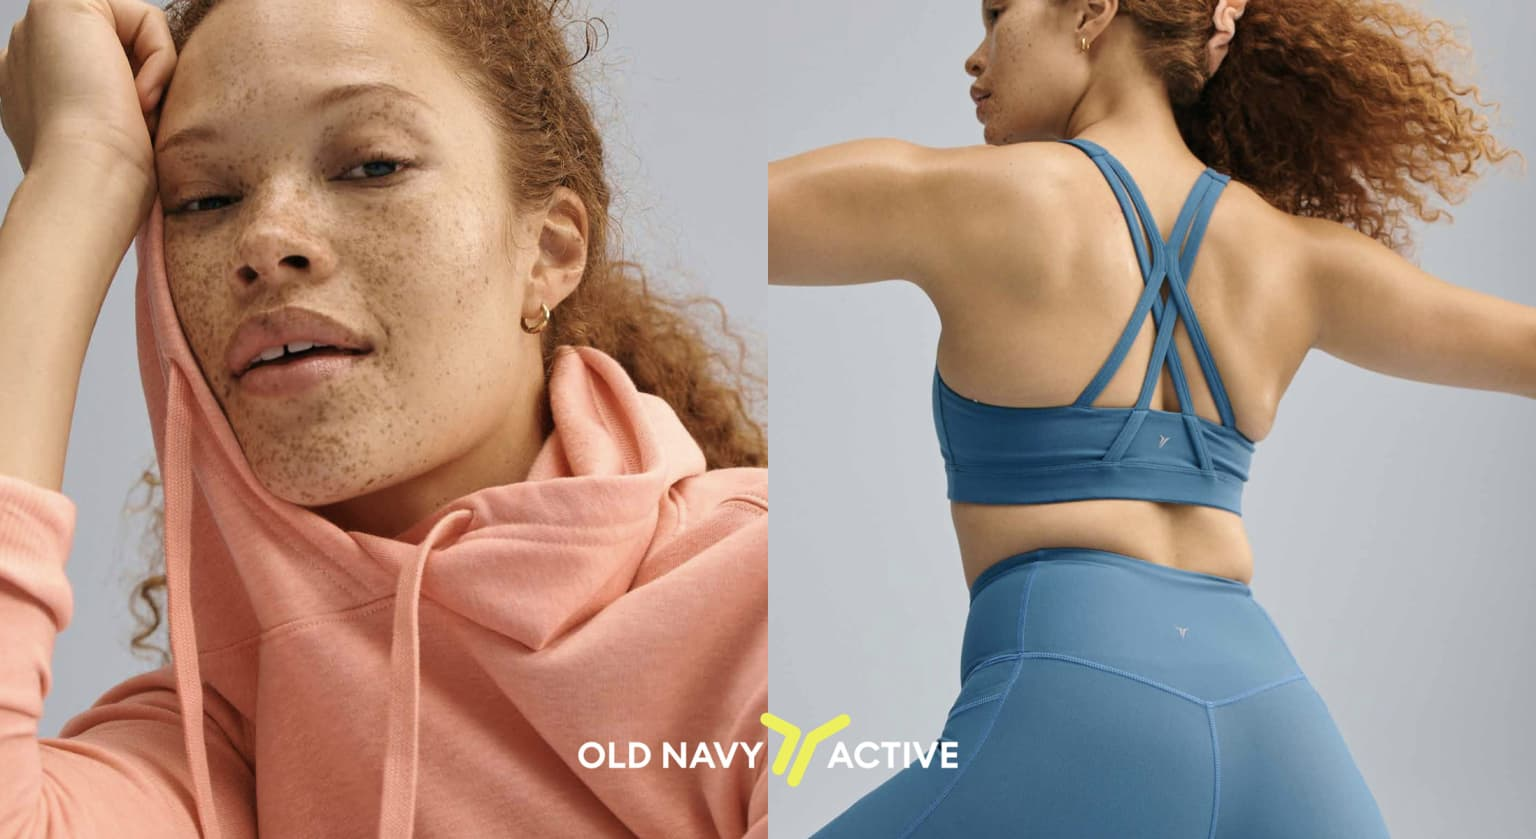 Old Navy Activwear